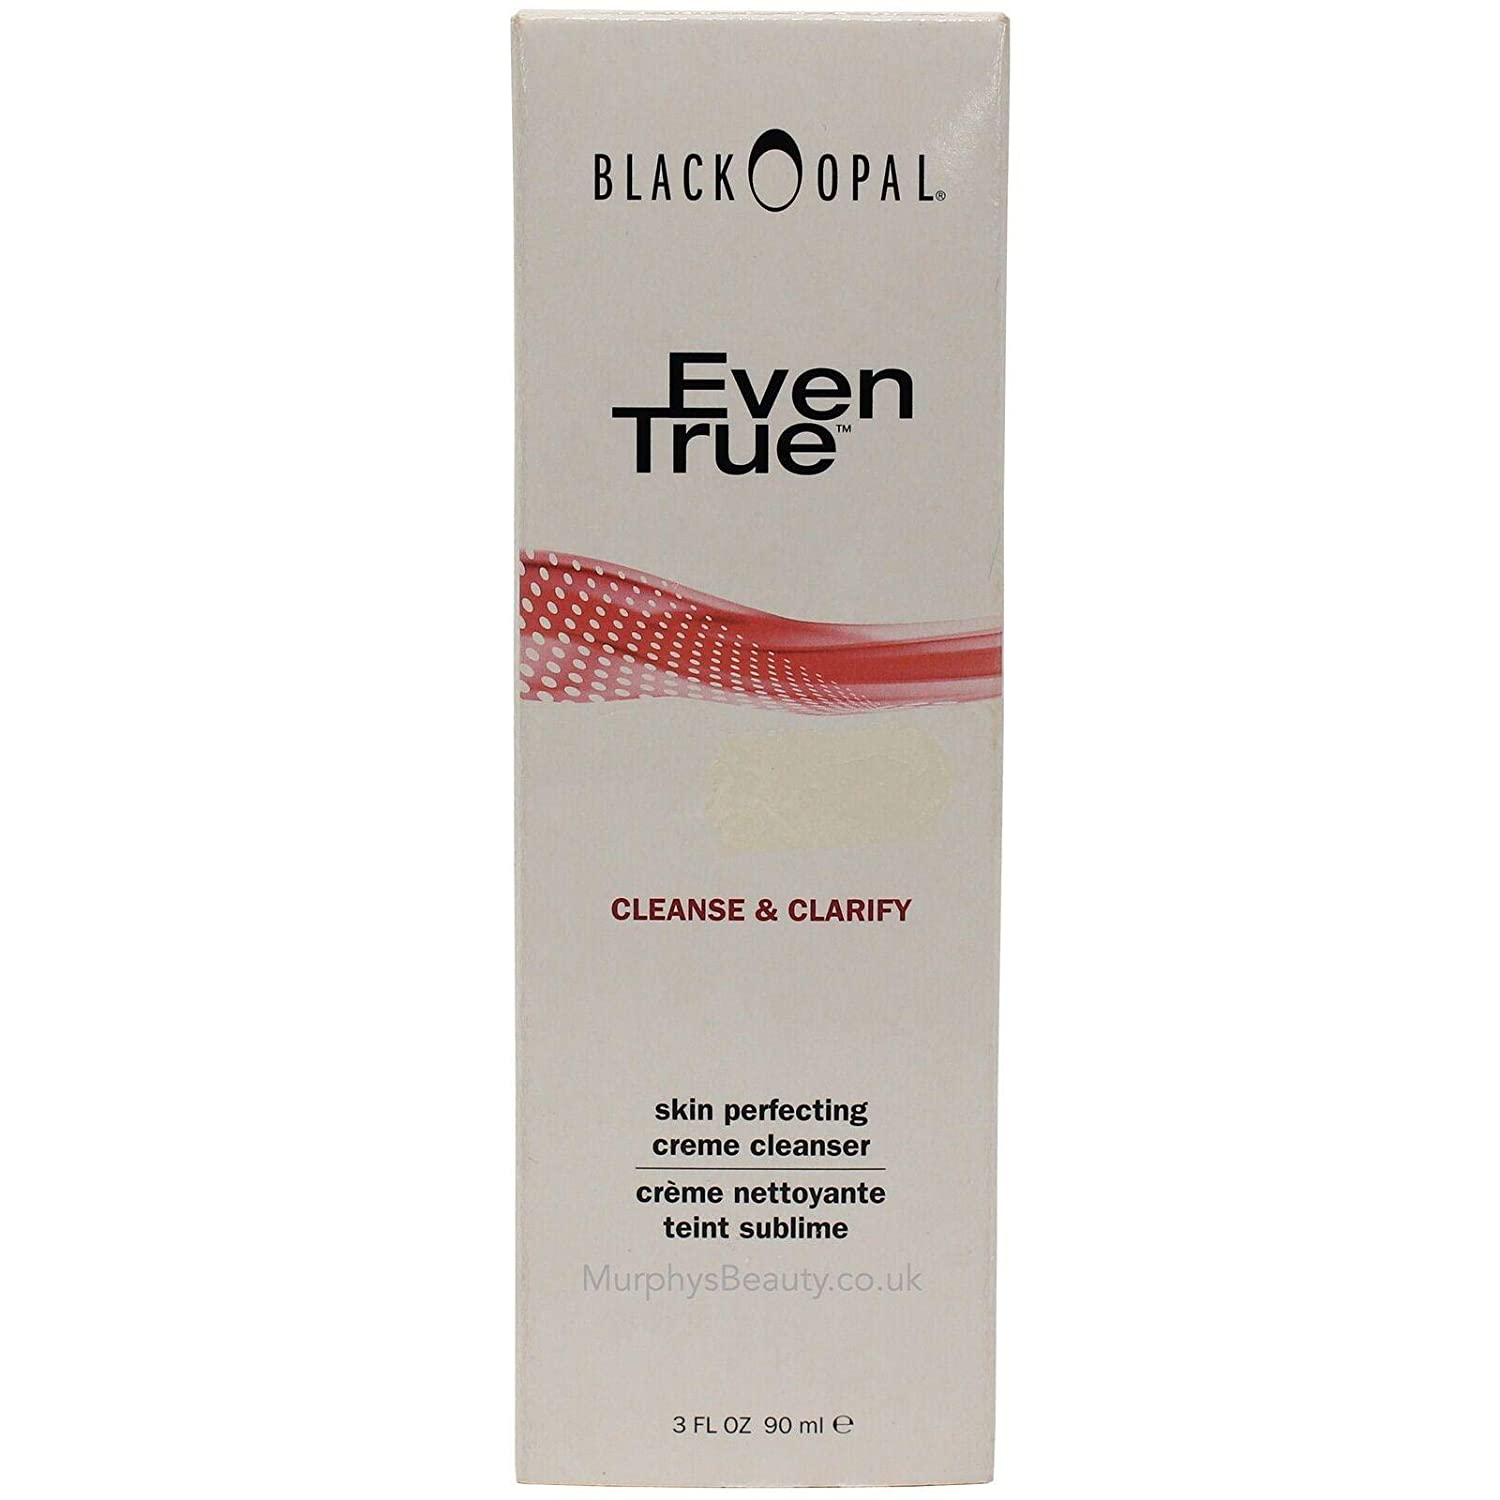 Black Opal 3 Ounces Even True Skin Perfecting Creme Cleanser